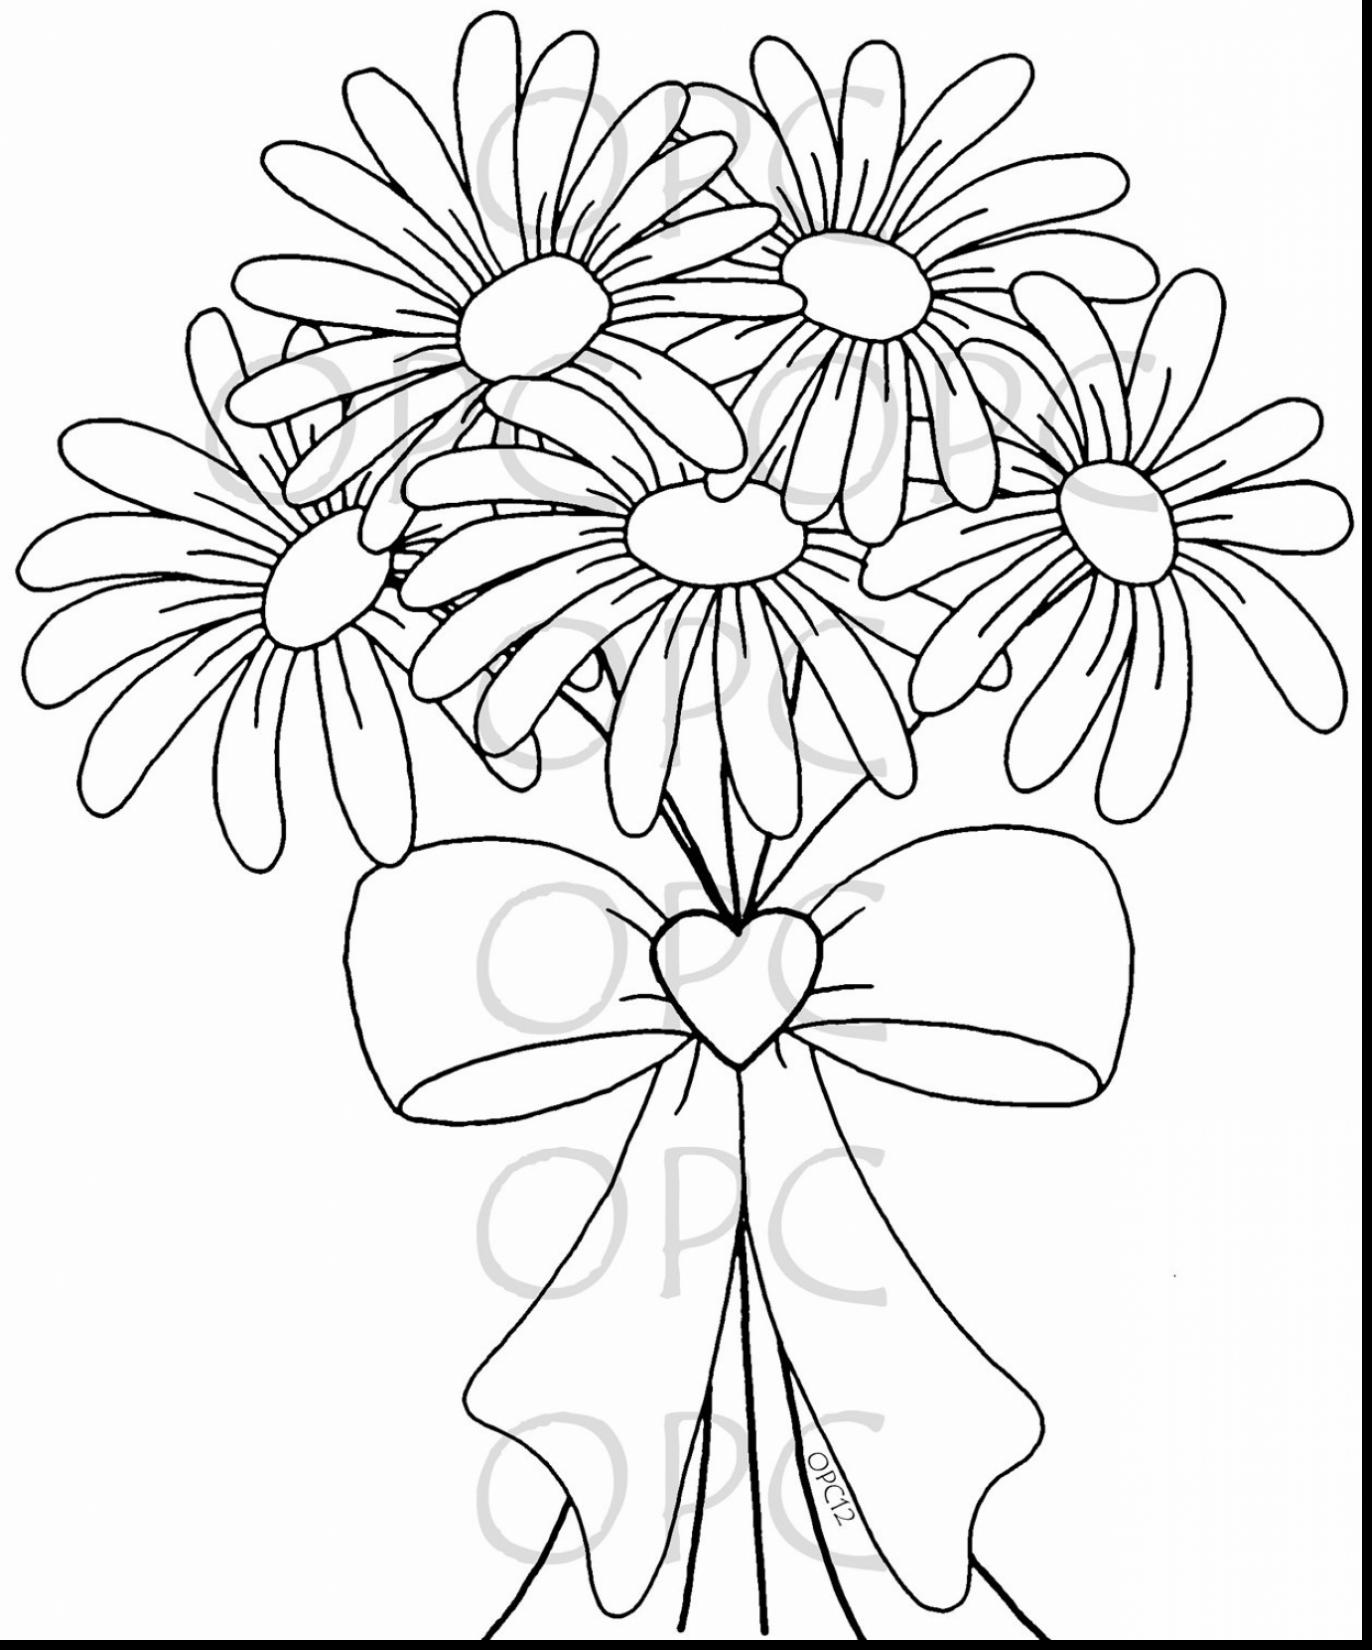 daisy flower coloring pages 30 printable autumn or fall coloring pages coloring flower pages daisy